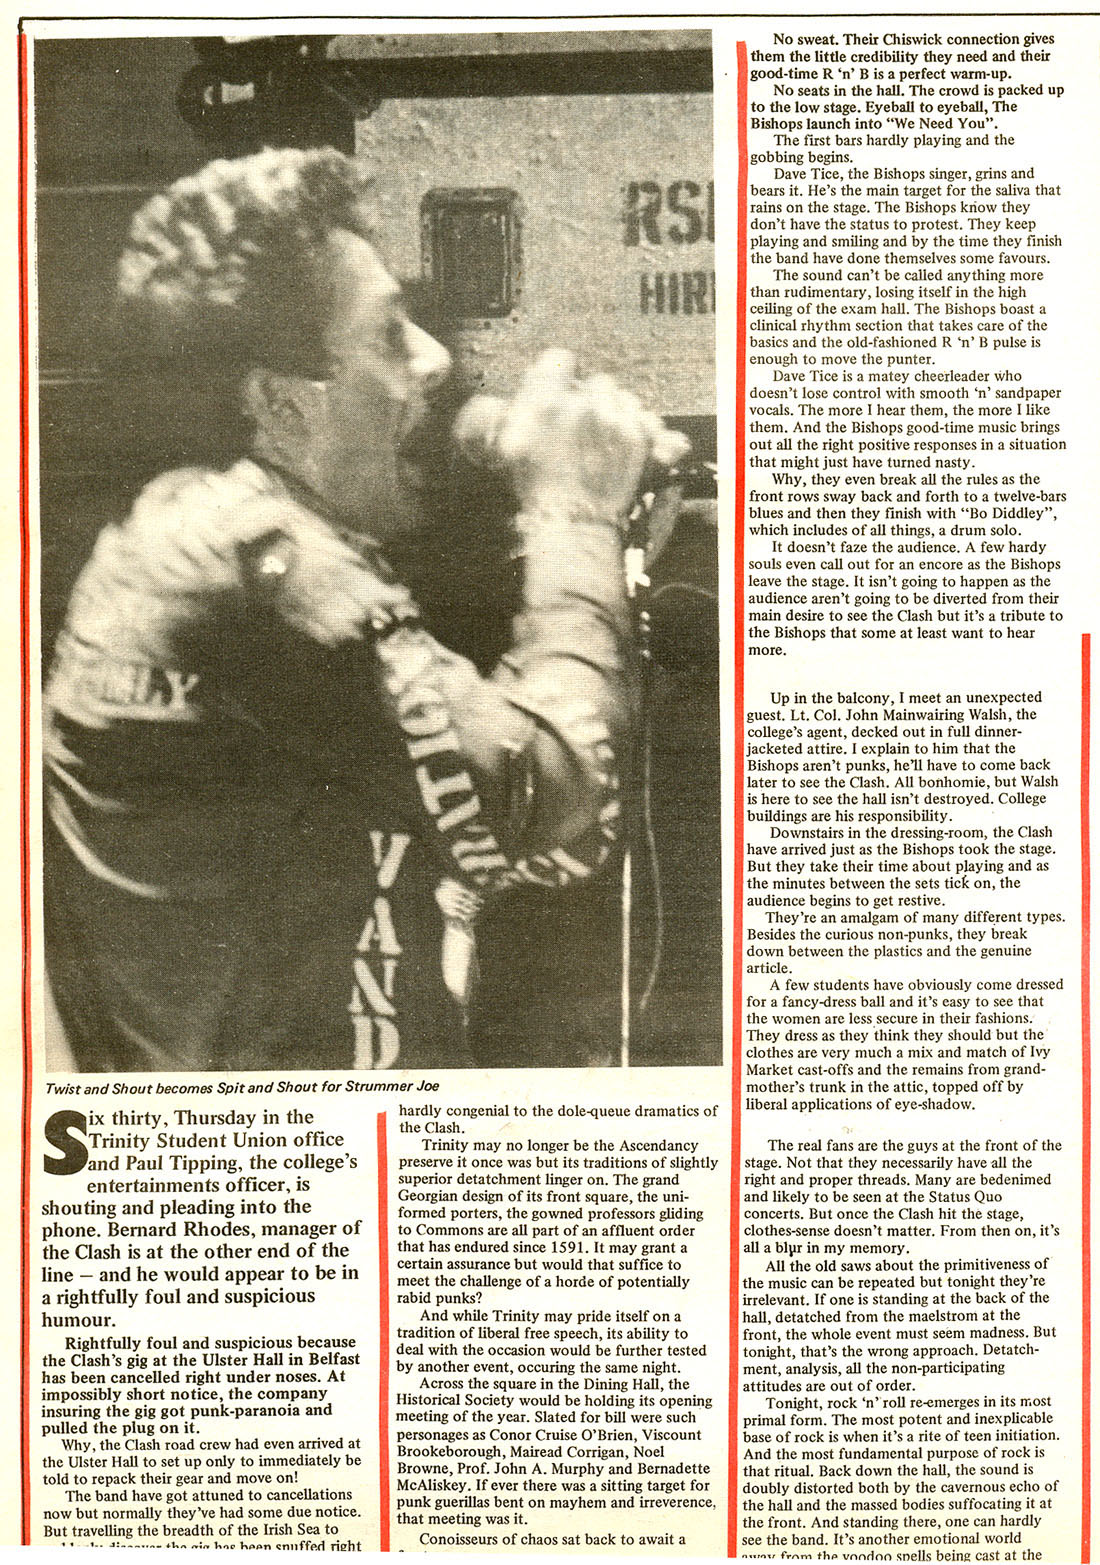 clash_review_dub_oct_1977_p1_hotpress